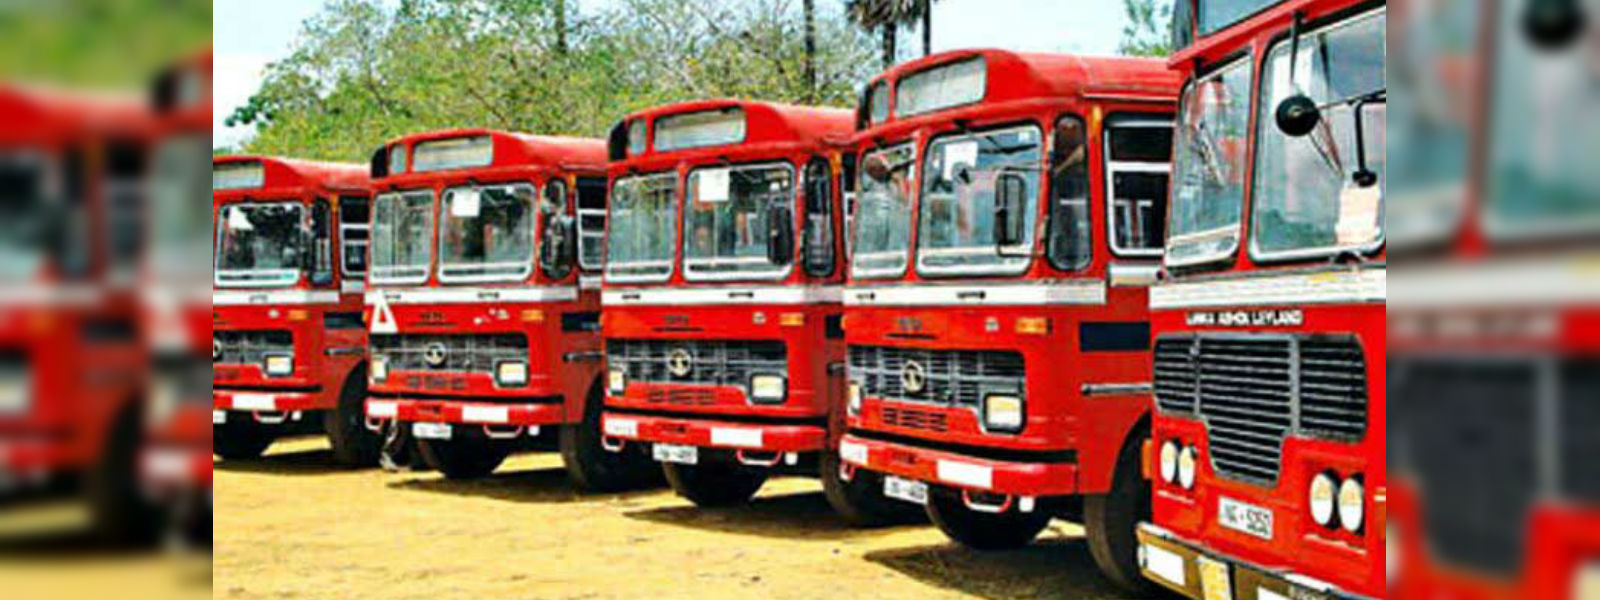 SLTB steps up bus services due to train strike